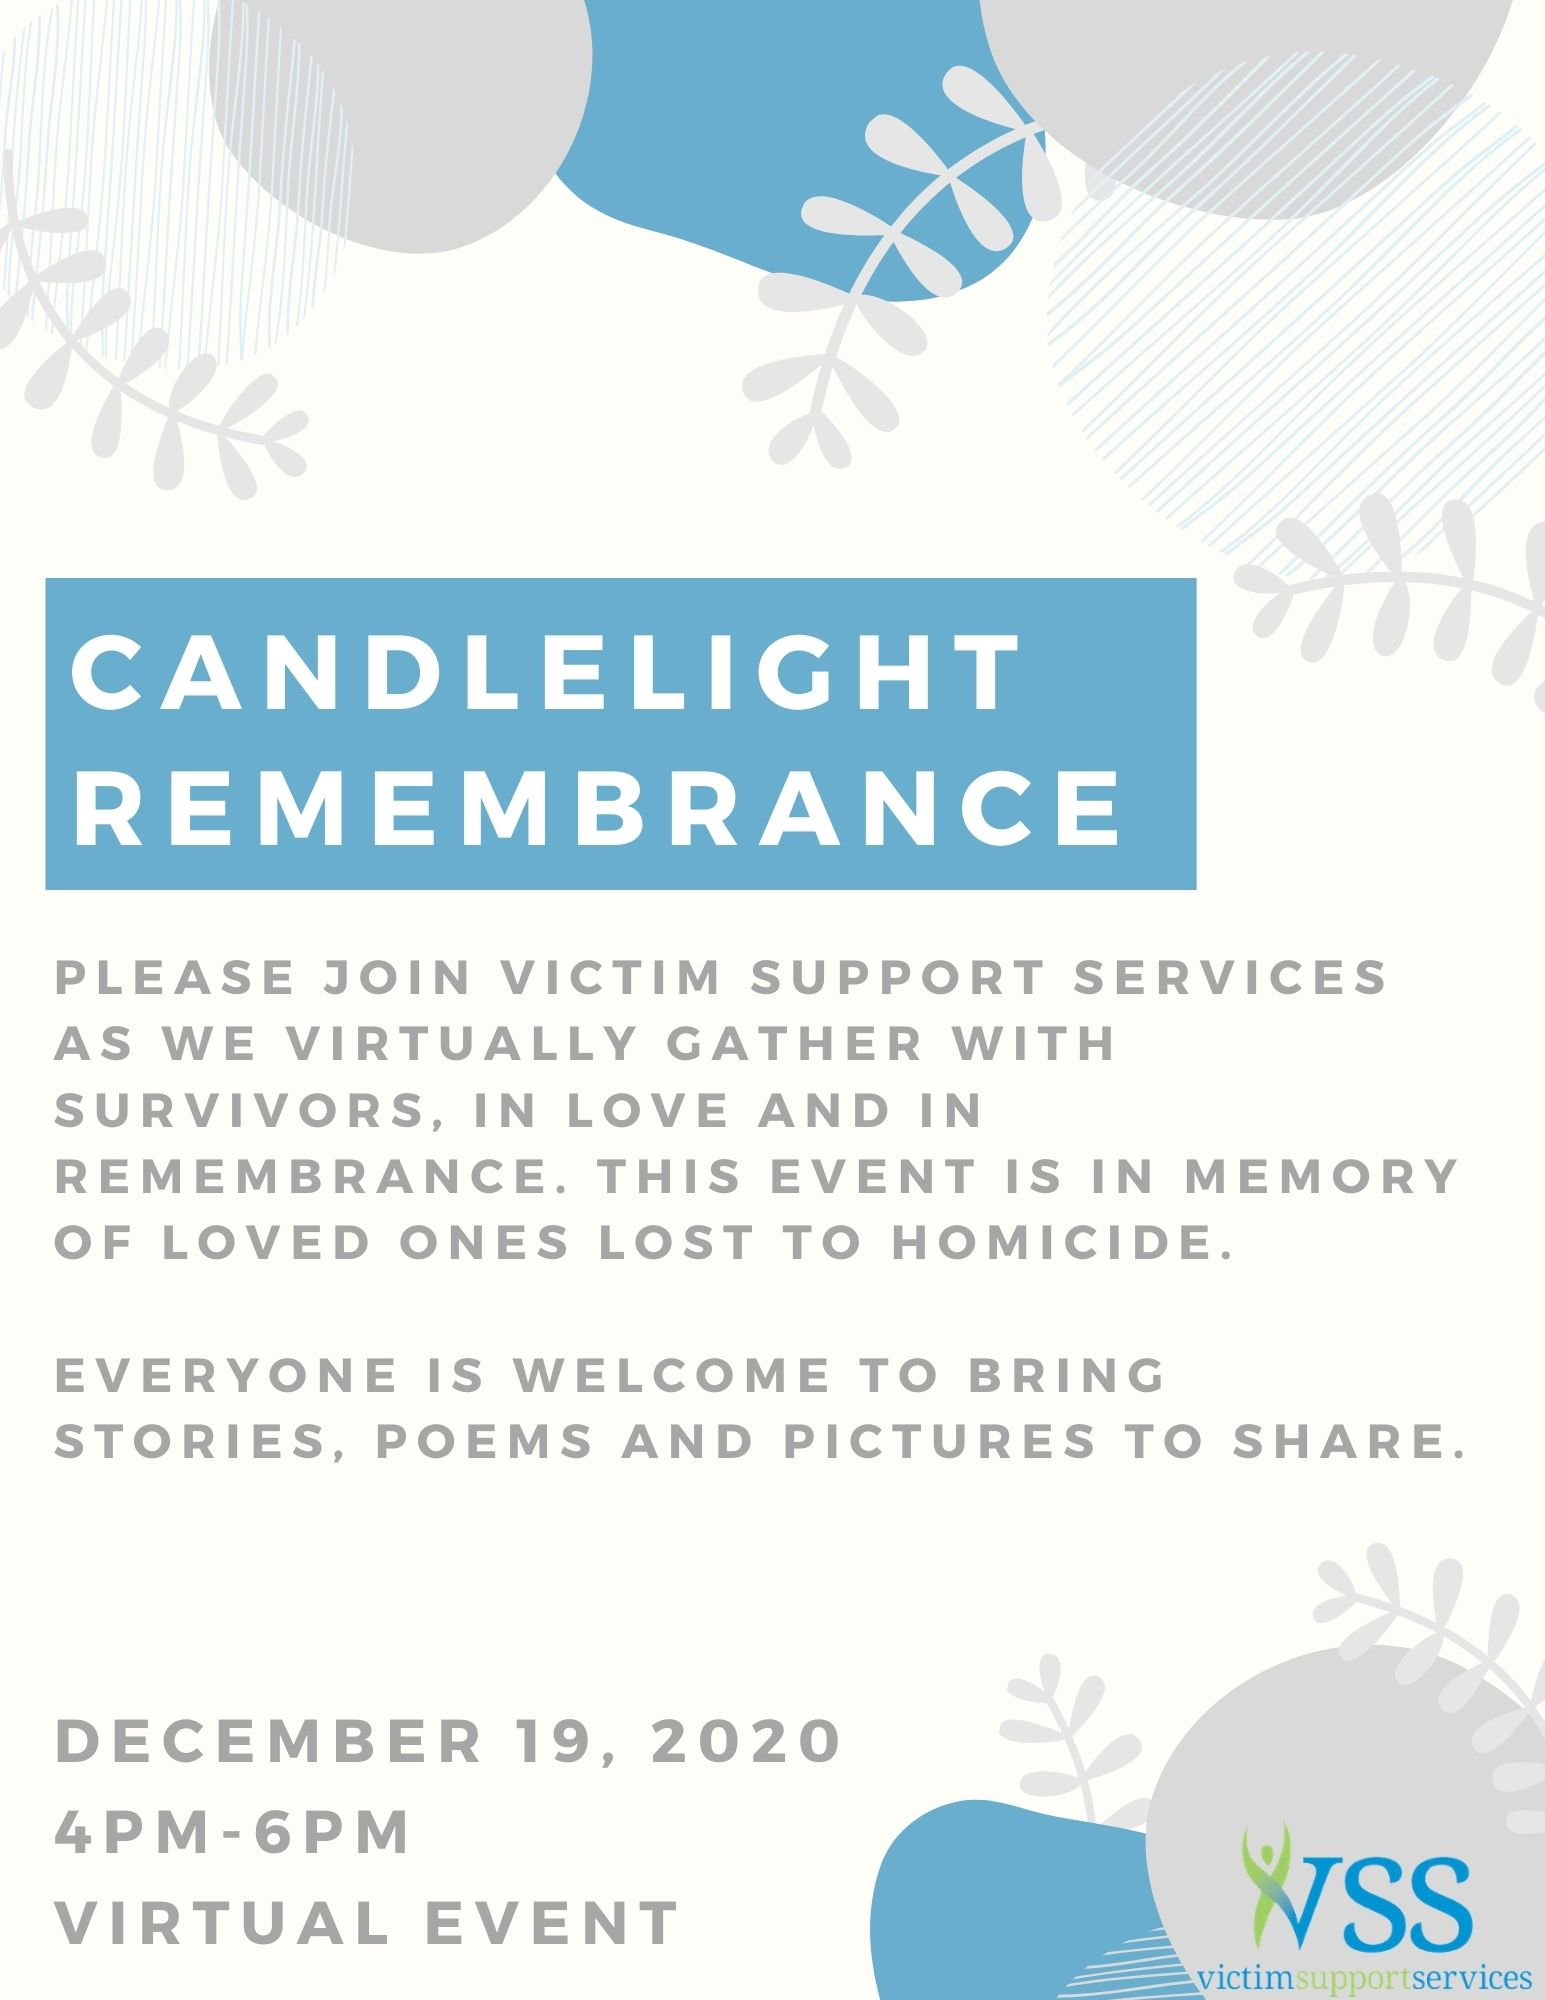 CANDLELIGHT REMEMBRANCE FLYER (1)